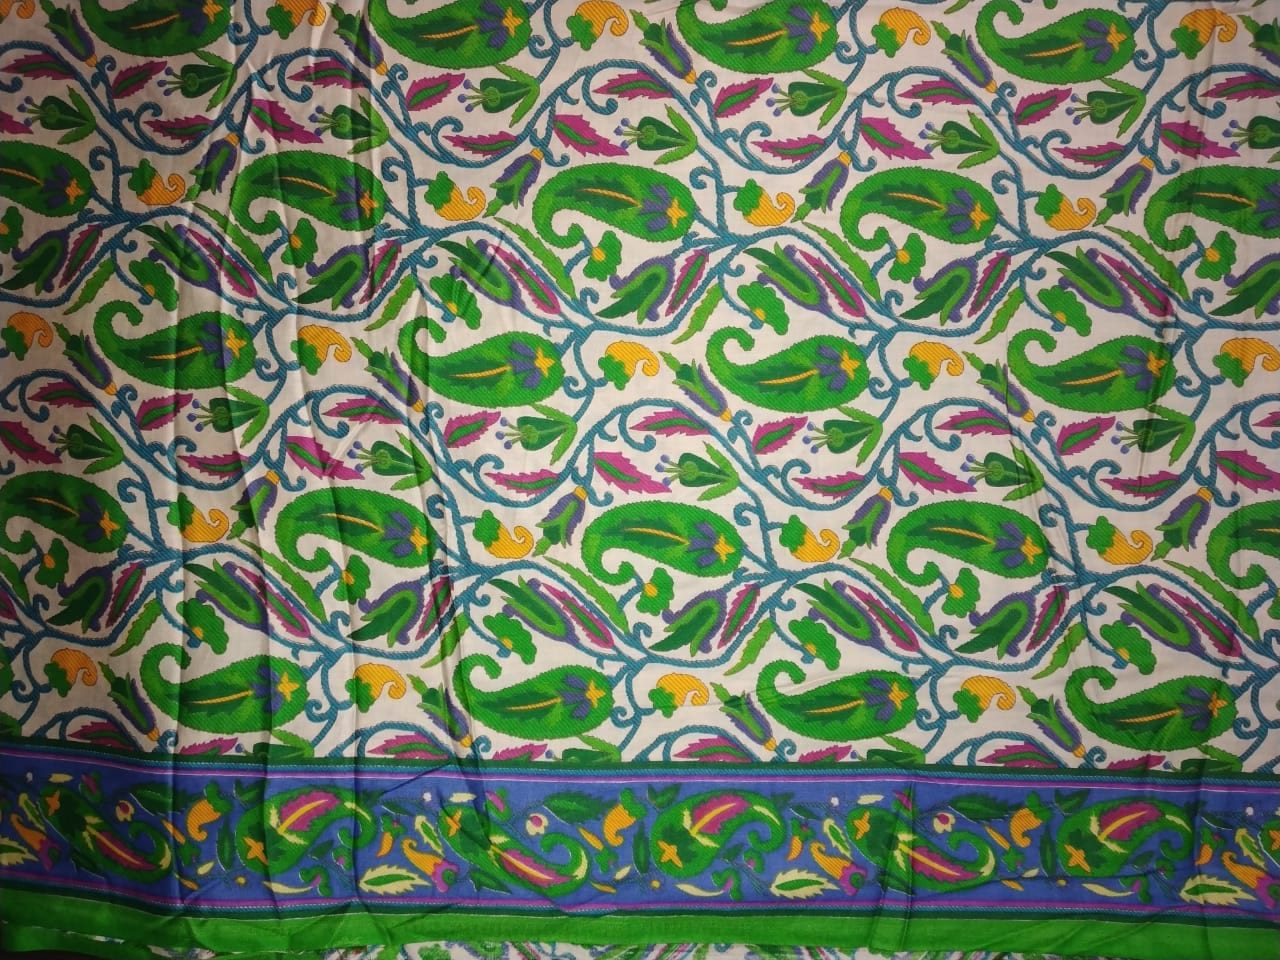 Green Paisley Printed Glazed Cotton Fabric for Multipurpose use GC008 2